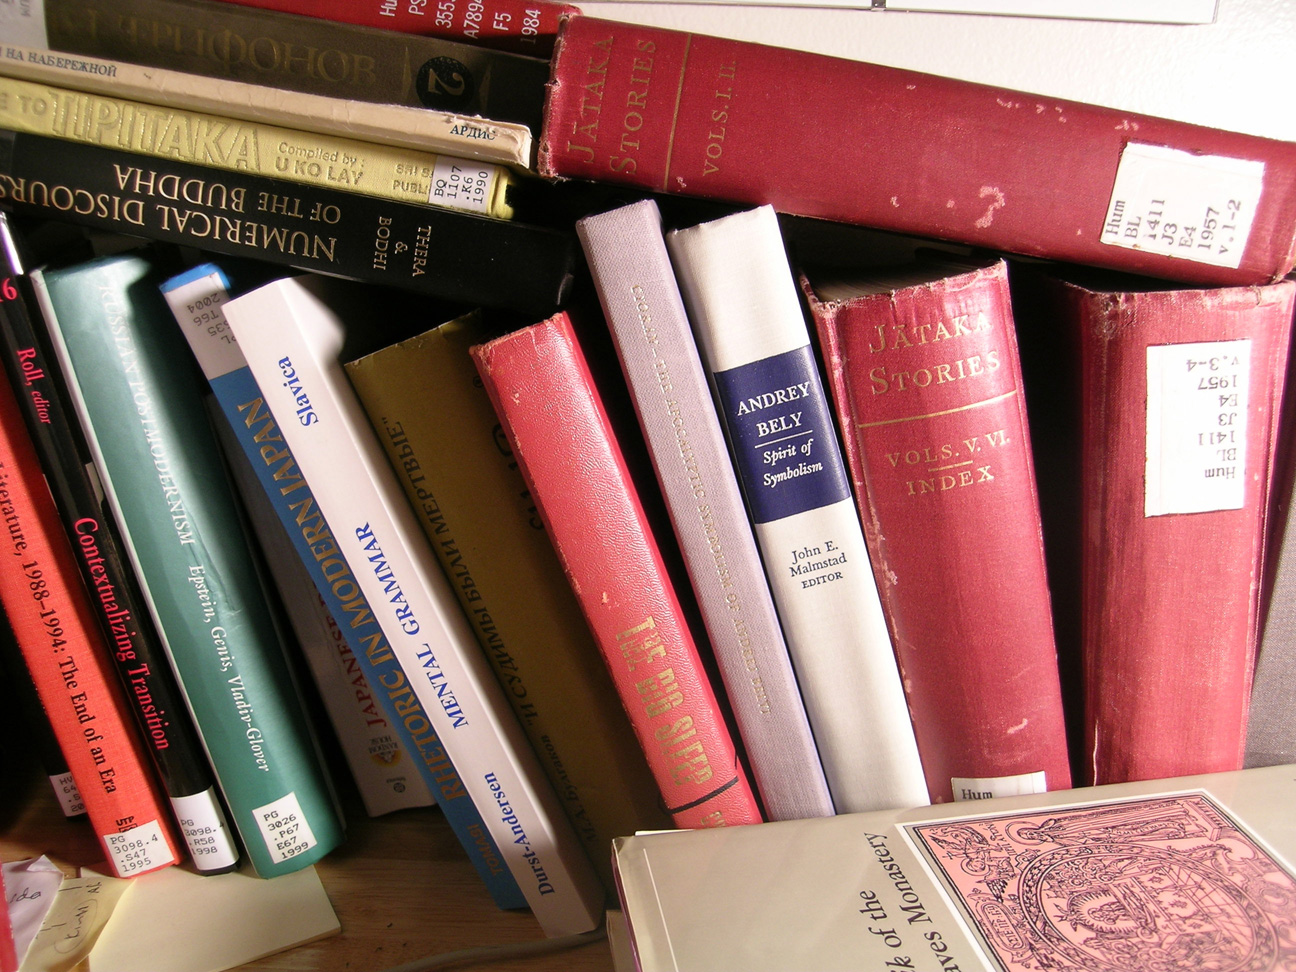 Library displays banned books through Oct. 7